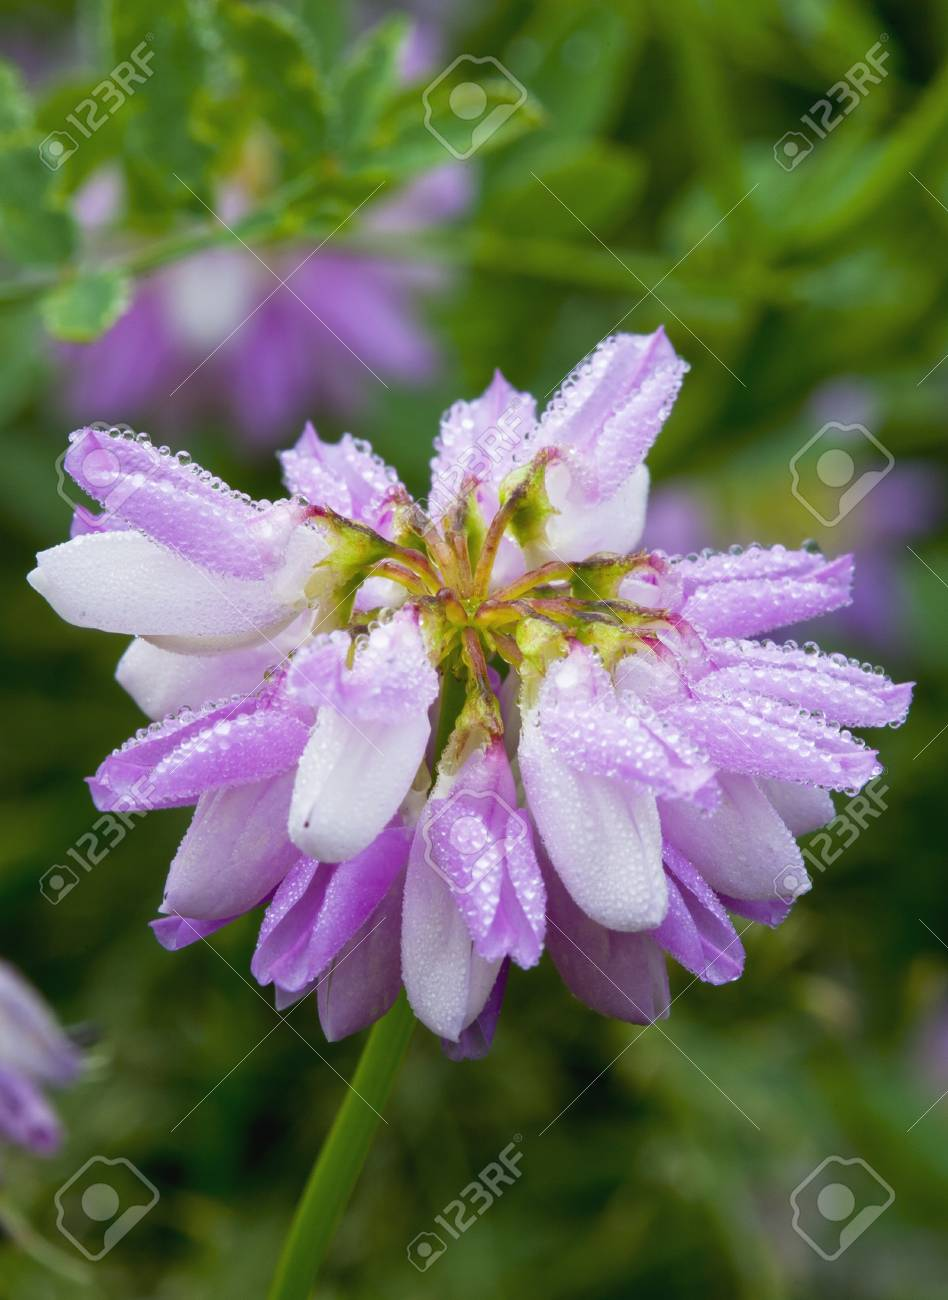 Morning dew on crown vetch cluster stock photo picture and royalty morning dew on crown vetch cluster stock photo 11112928 izmirmasajfo